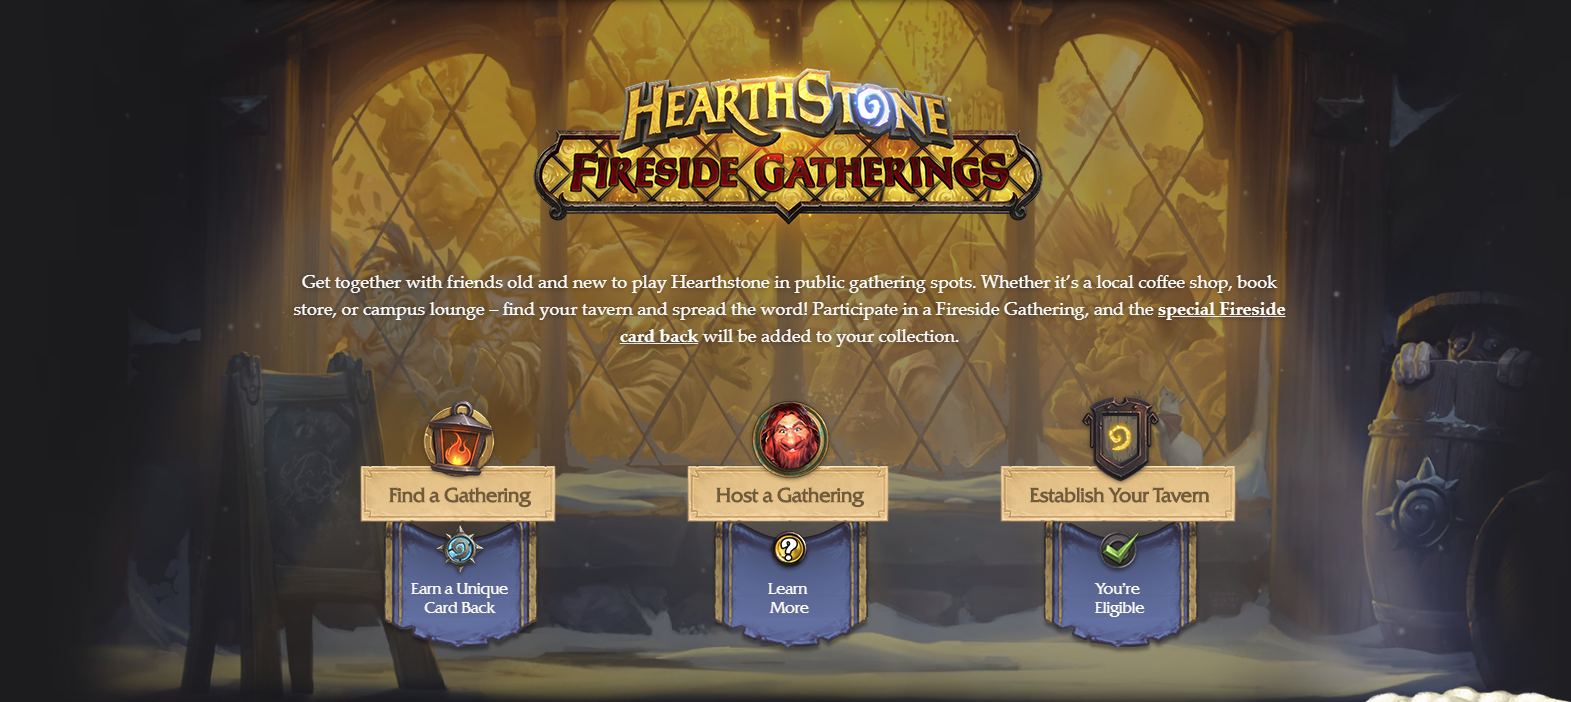 Fireside Gathering Application